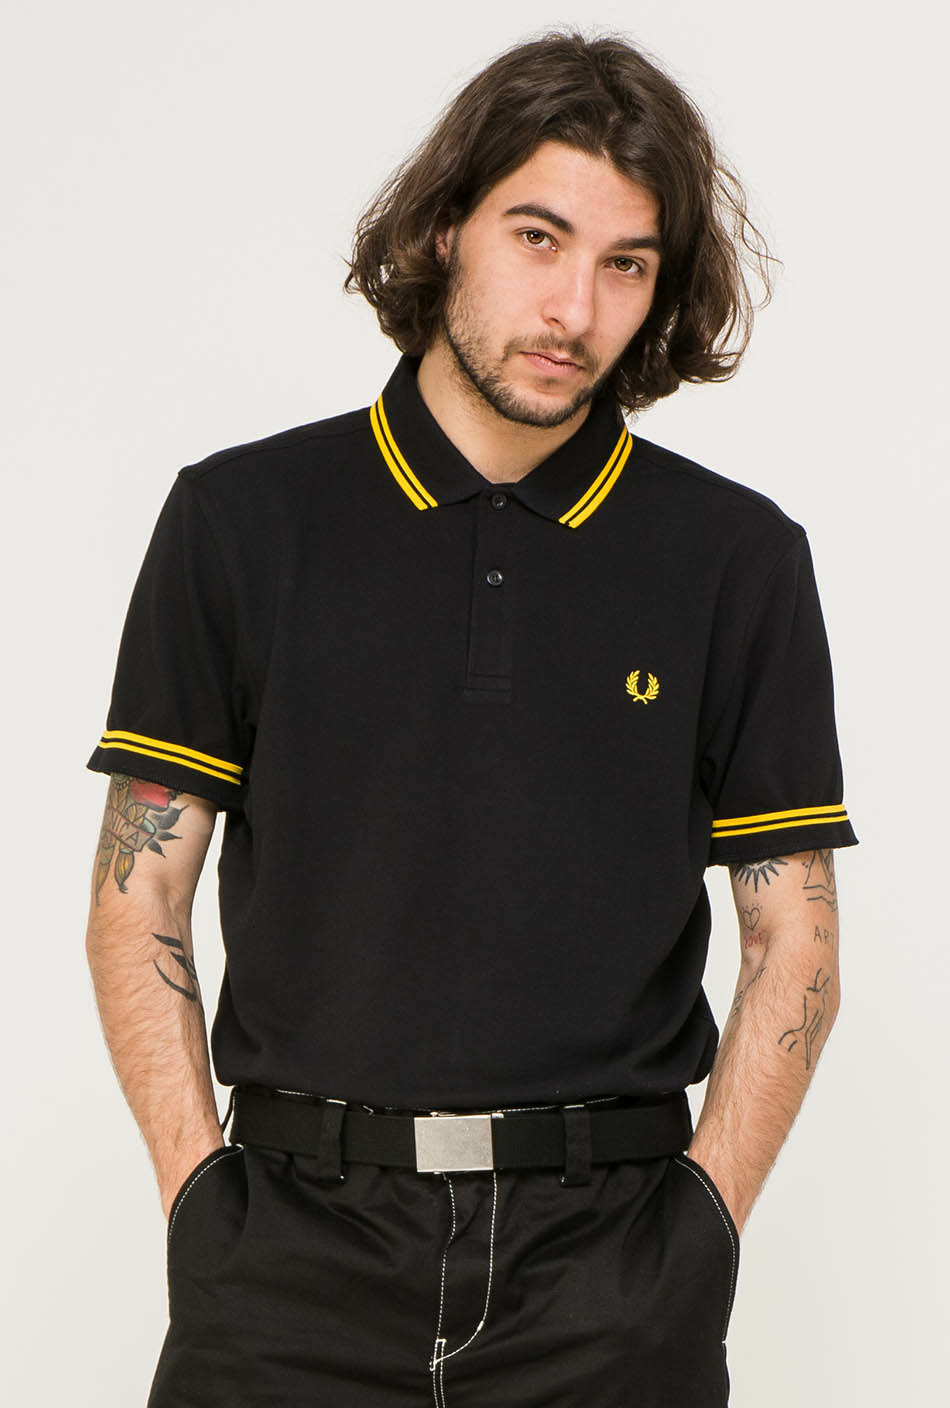 Fred Perry black shirt